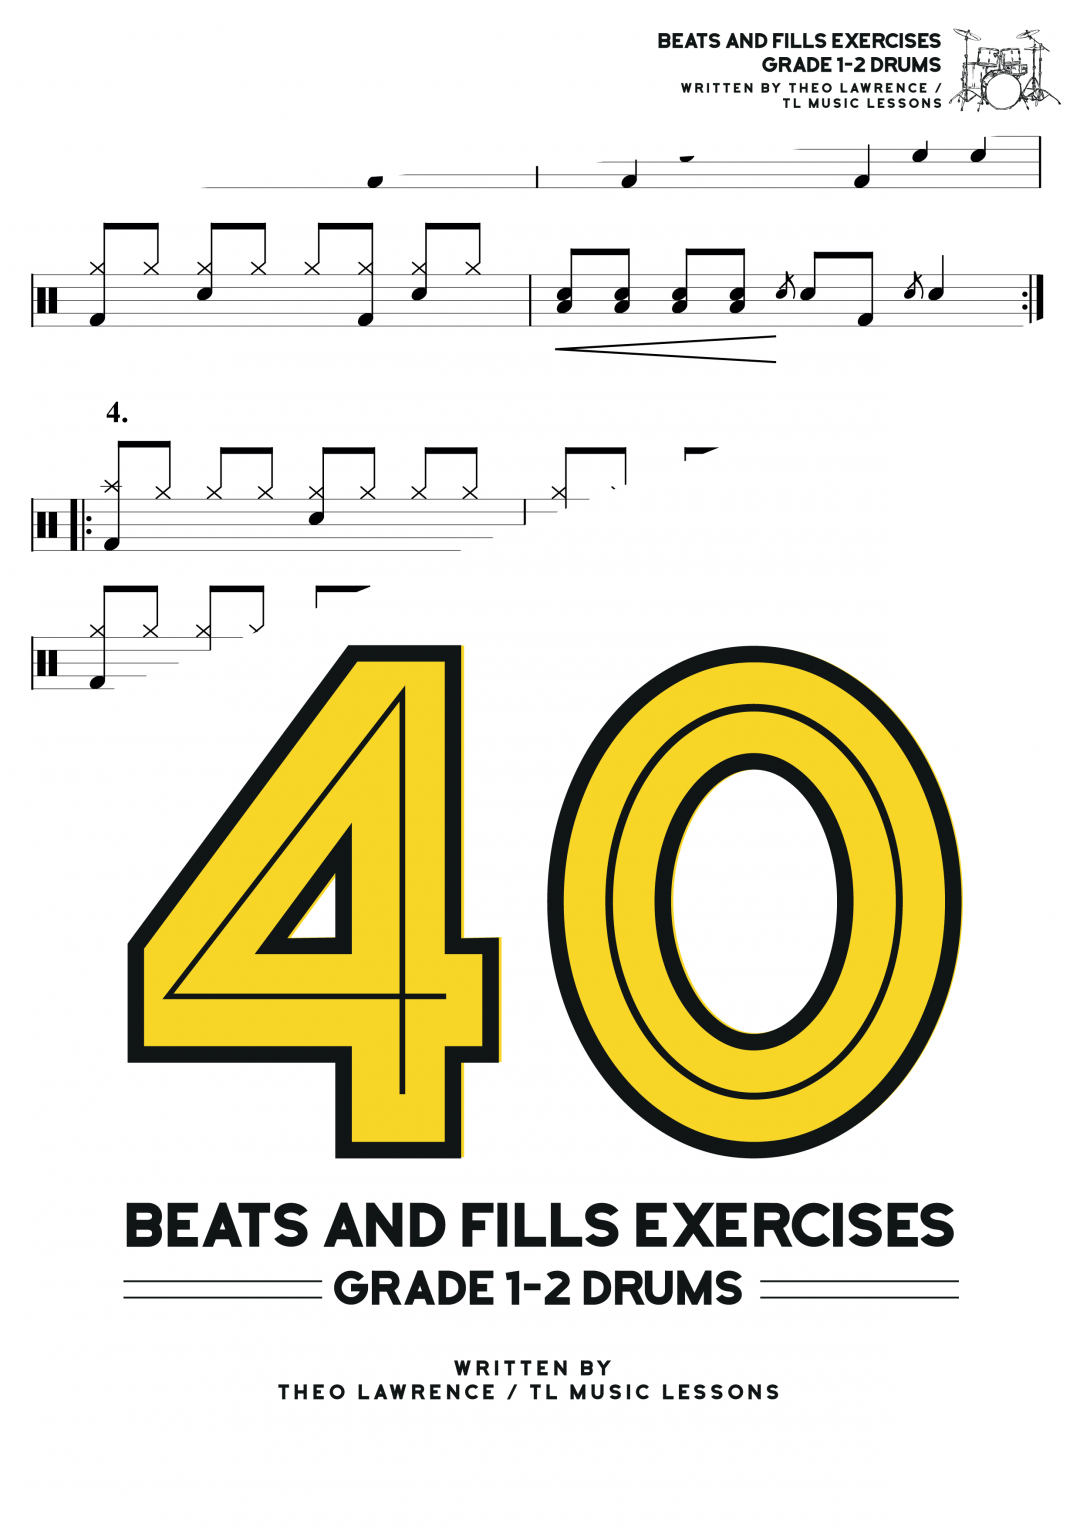 [Premium] – 40 Beats and Fills Exercises Ebook